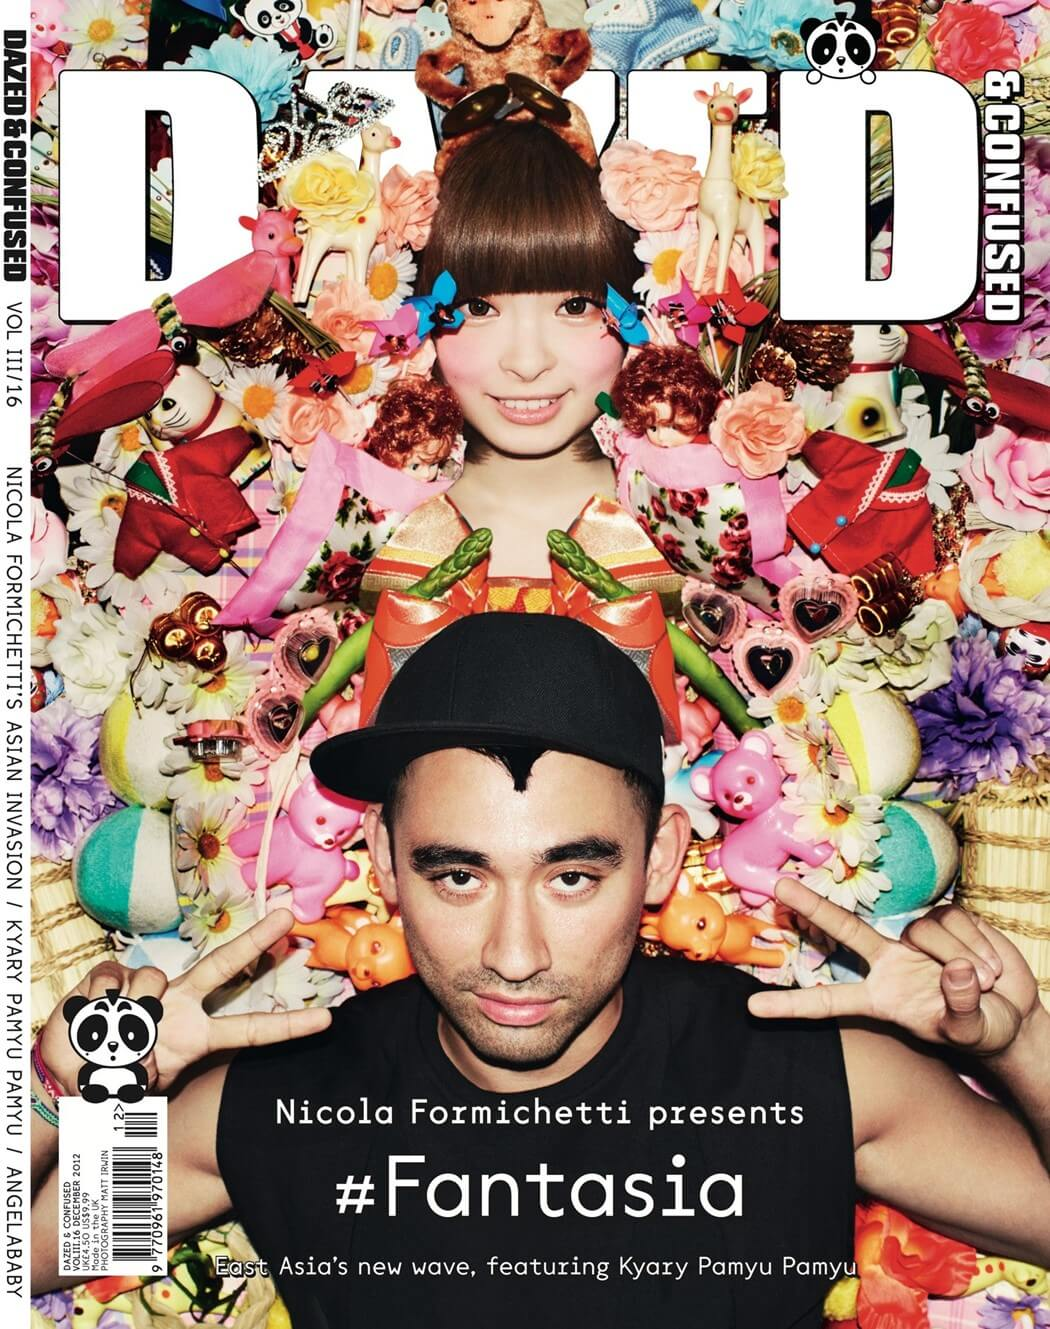 Kyary Pamyu Pamyu and Nicola Formichetti #Fantasia Cover for Dazed (December 2012)